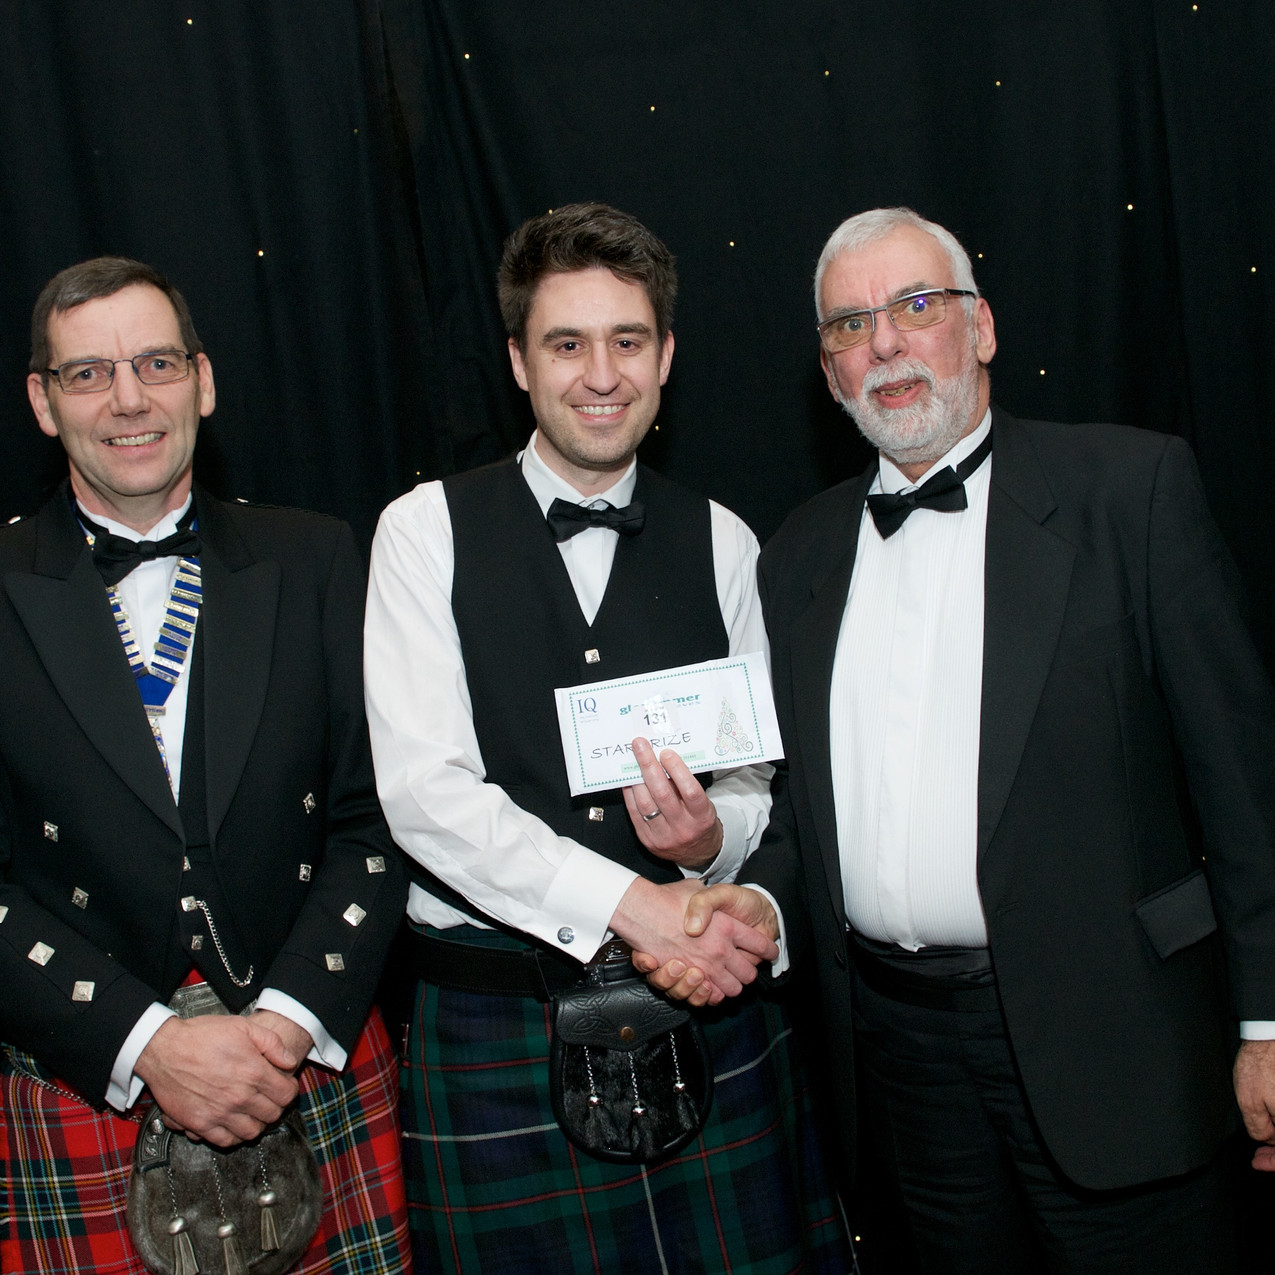 Glenammer Director Allen Matthews and Scottish Branch of IQ Chairman Andrew Gillon awarded a Star Prize to (£750 John Lewis vouchers) to Kris Bremner, of Breedon Group